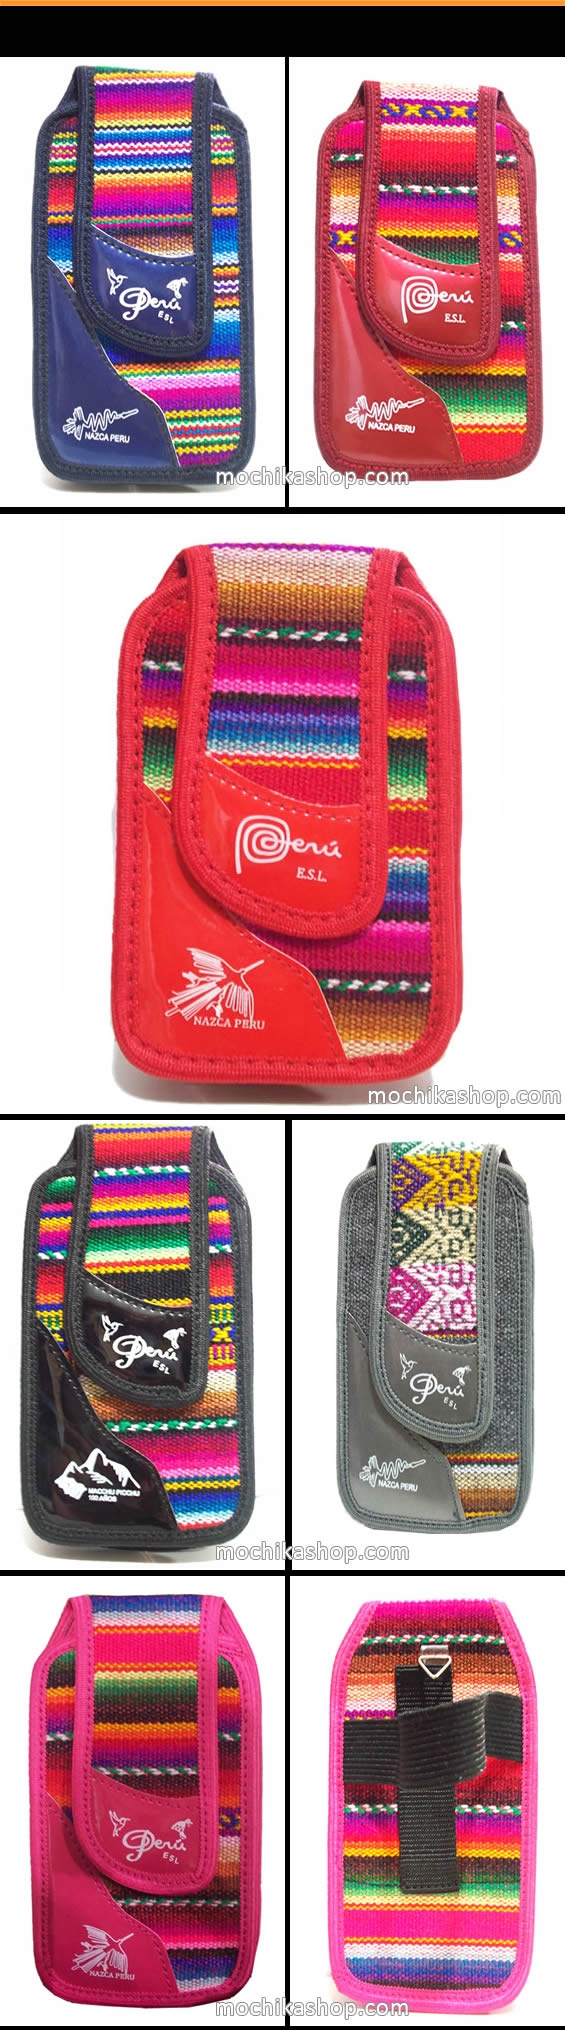 12 Cell Phone Pouches